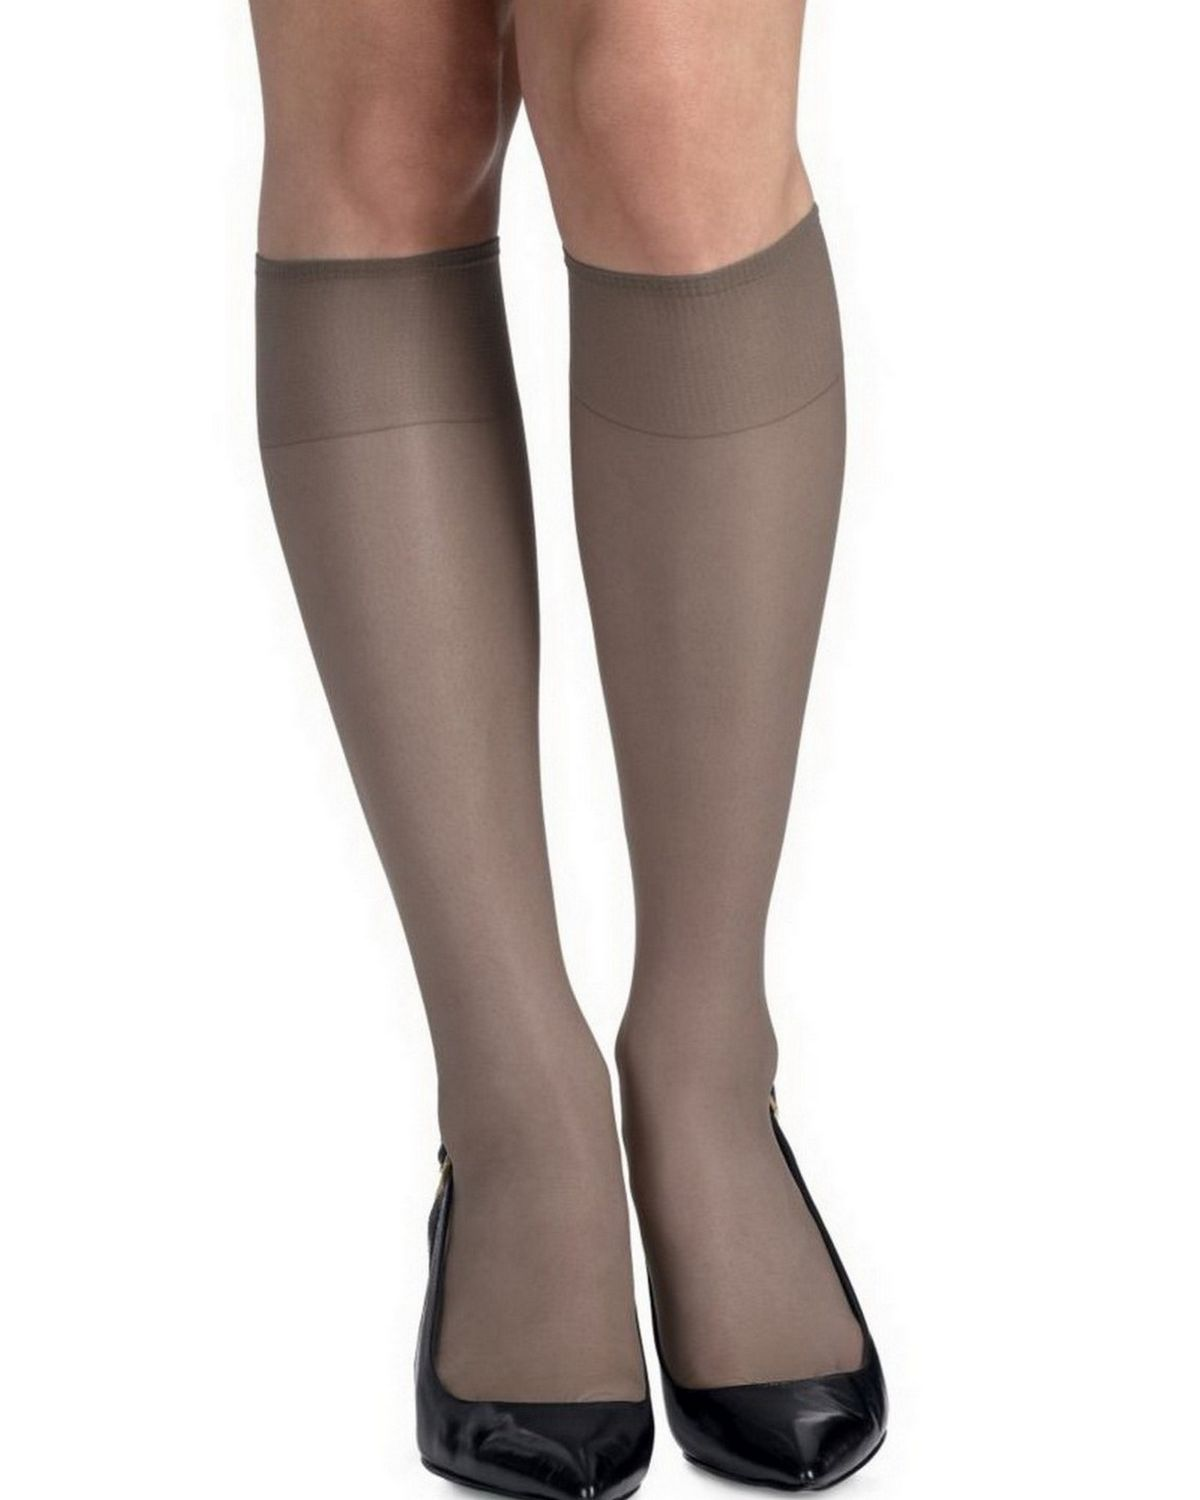 Hanes 775 Women's Silk Reflections Silky Sheer Knee Highs Reinforced Toe 2-Pack - Barely Black - One Size #silk